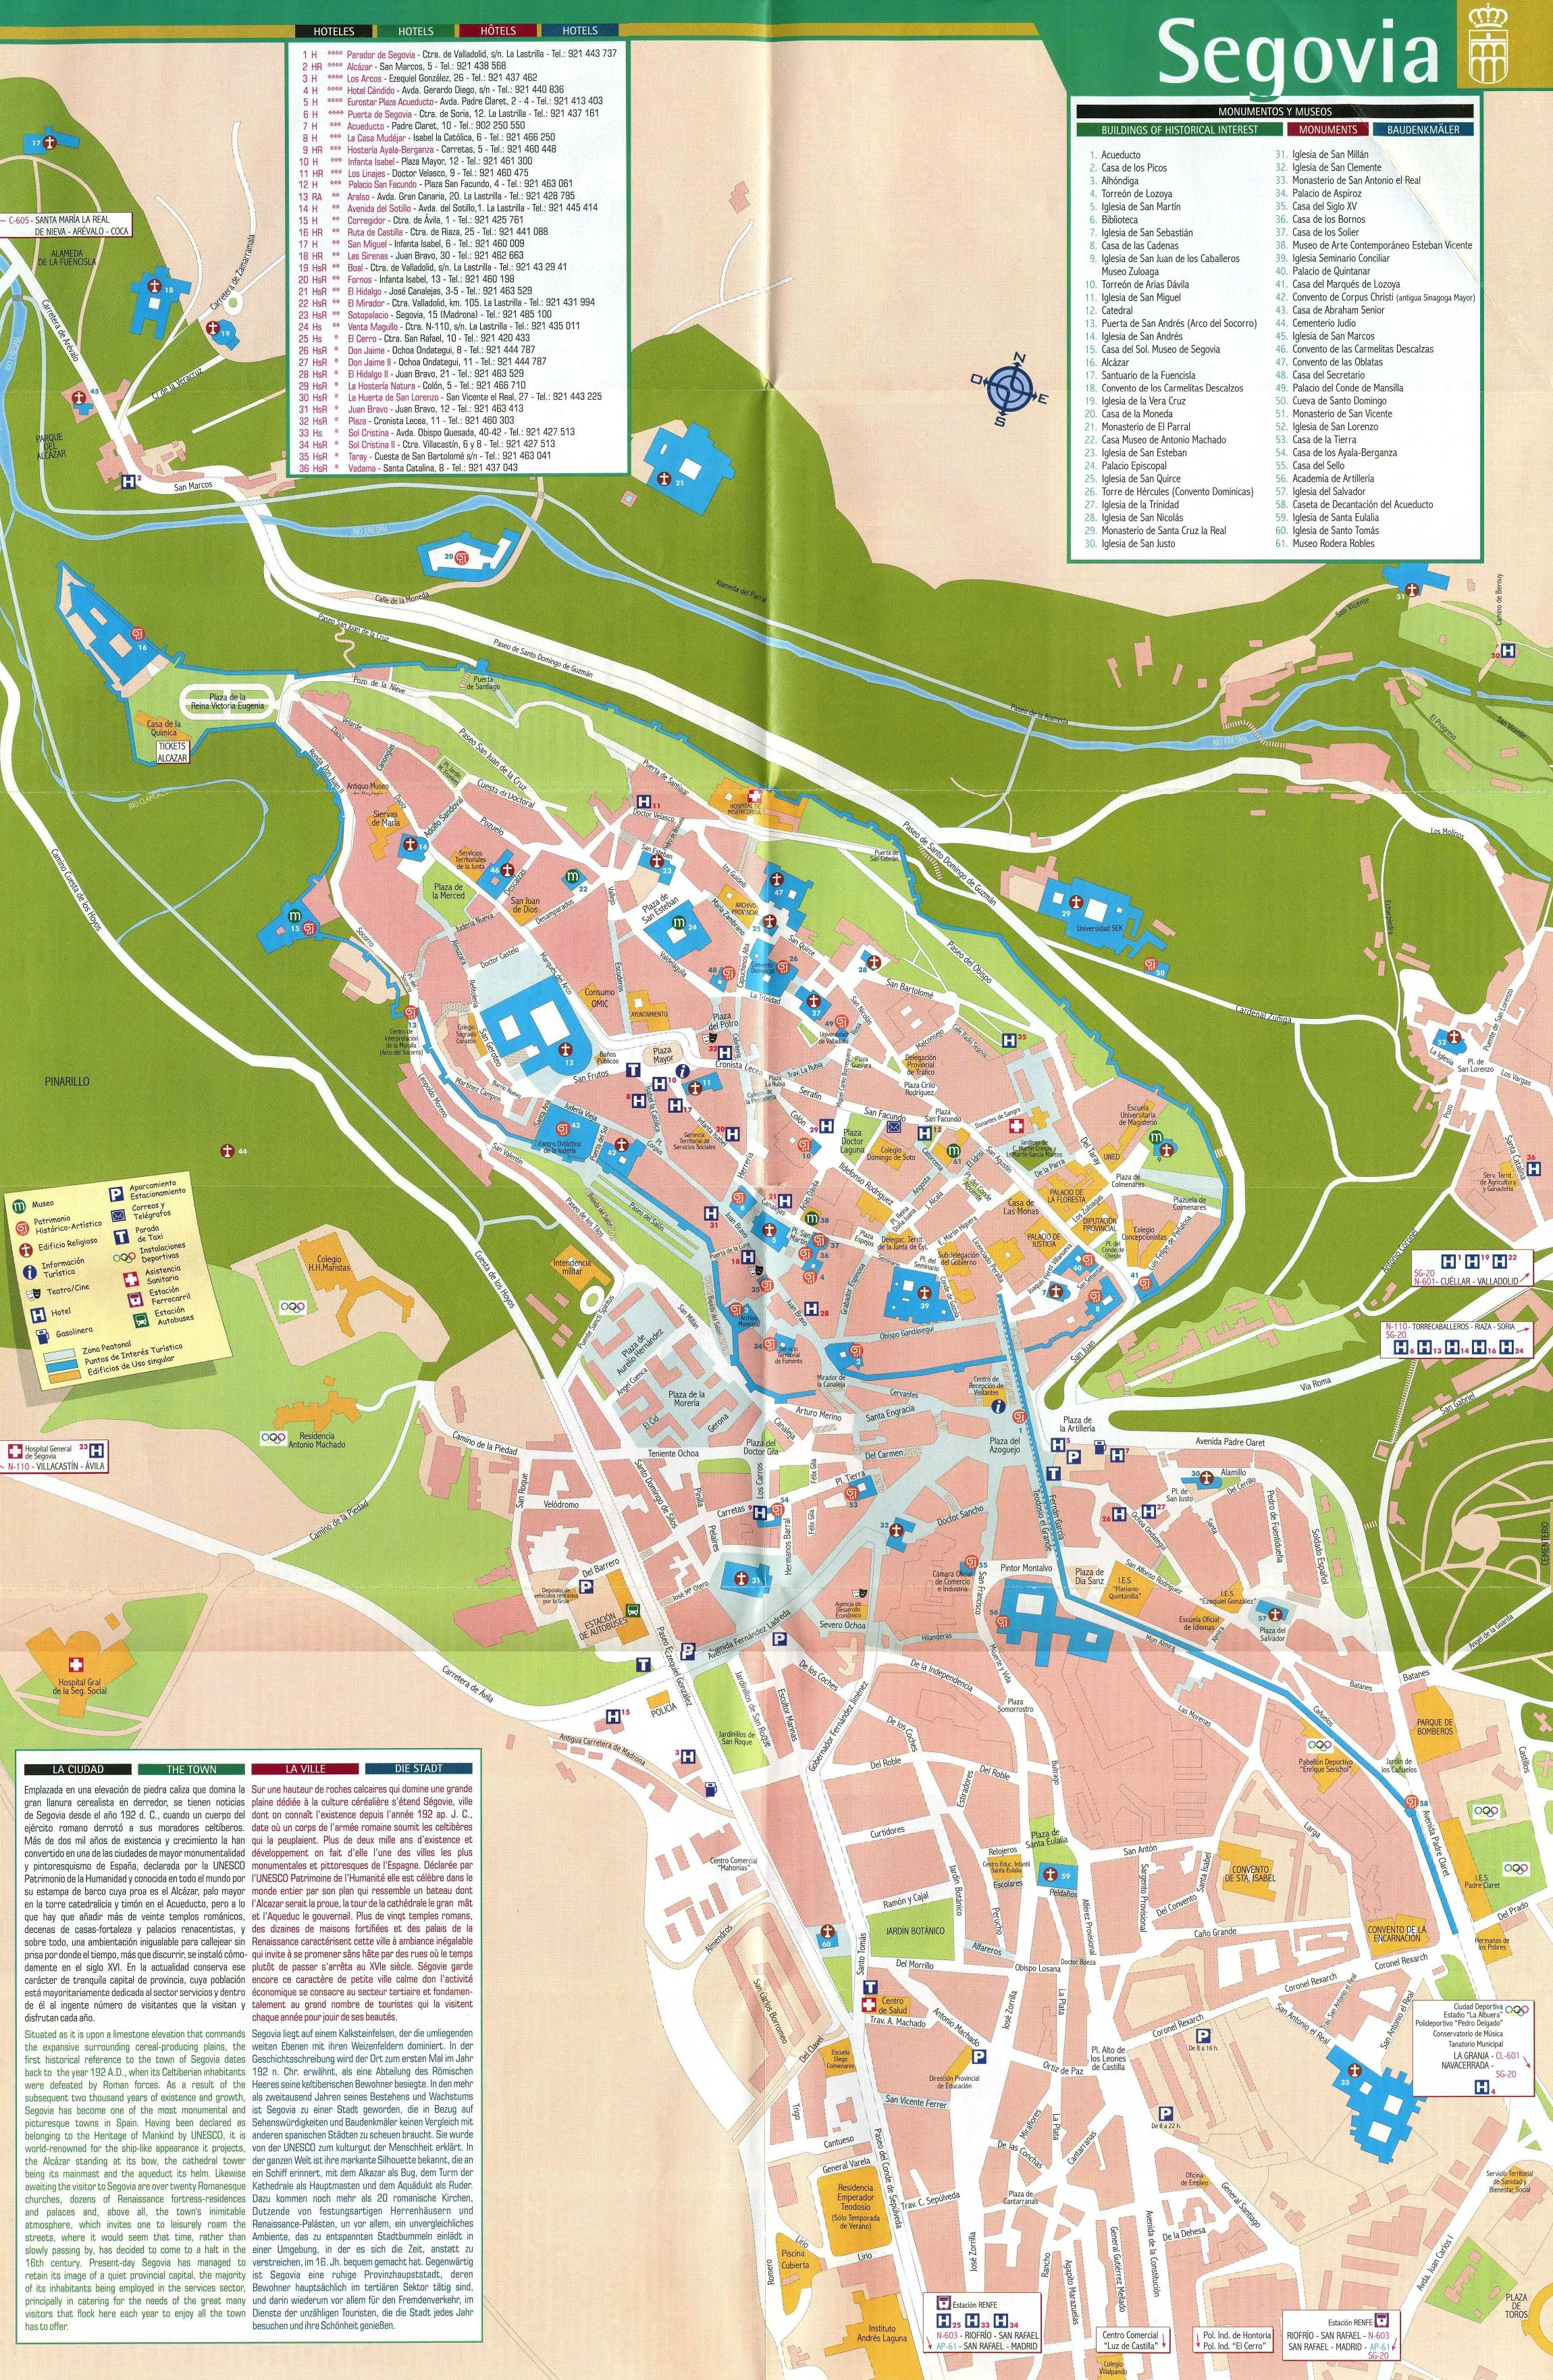 SEGOVIA SPAIN MAP Imsa Kolese – Tourist Map Of Cordoba Spain